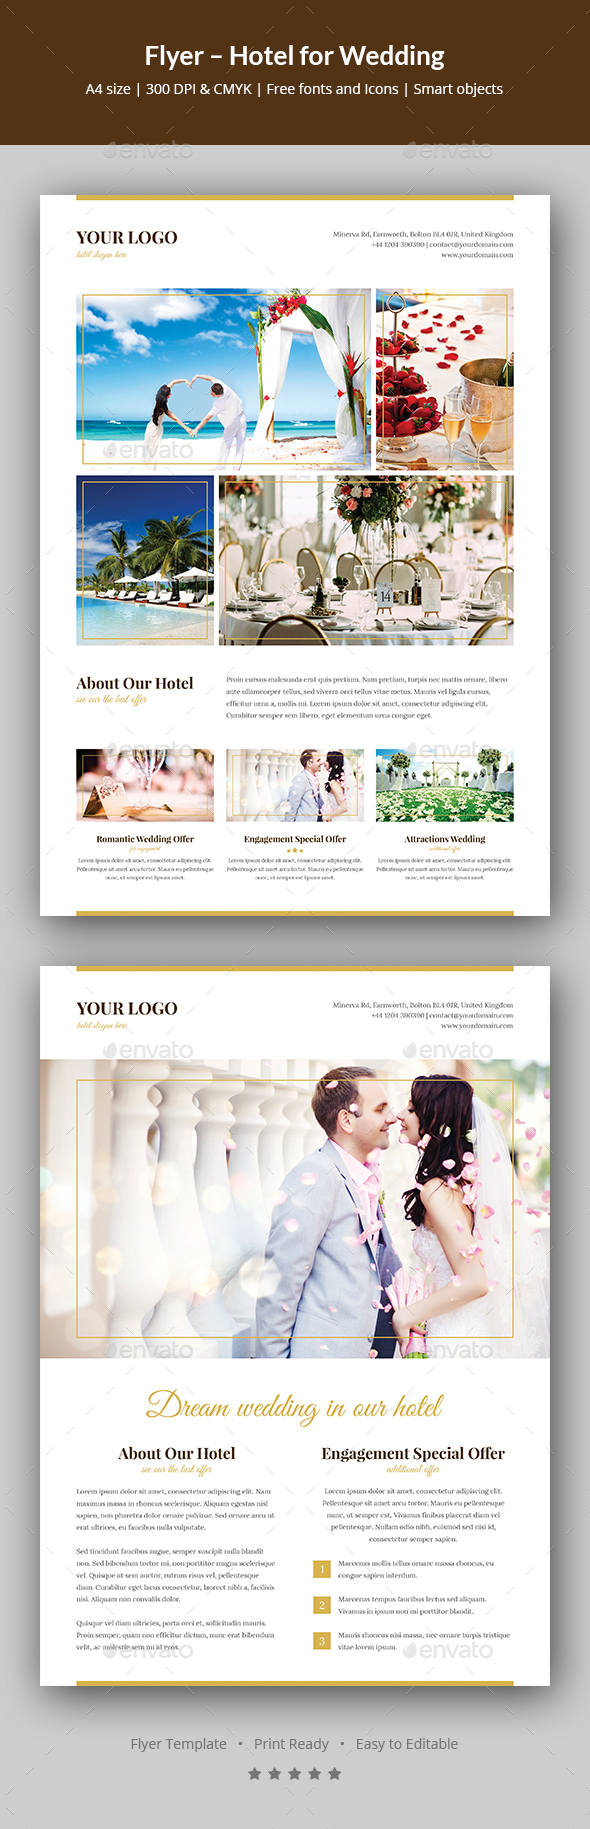 GraphicRiver Flyer Hotel for Wedding 20777127